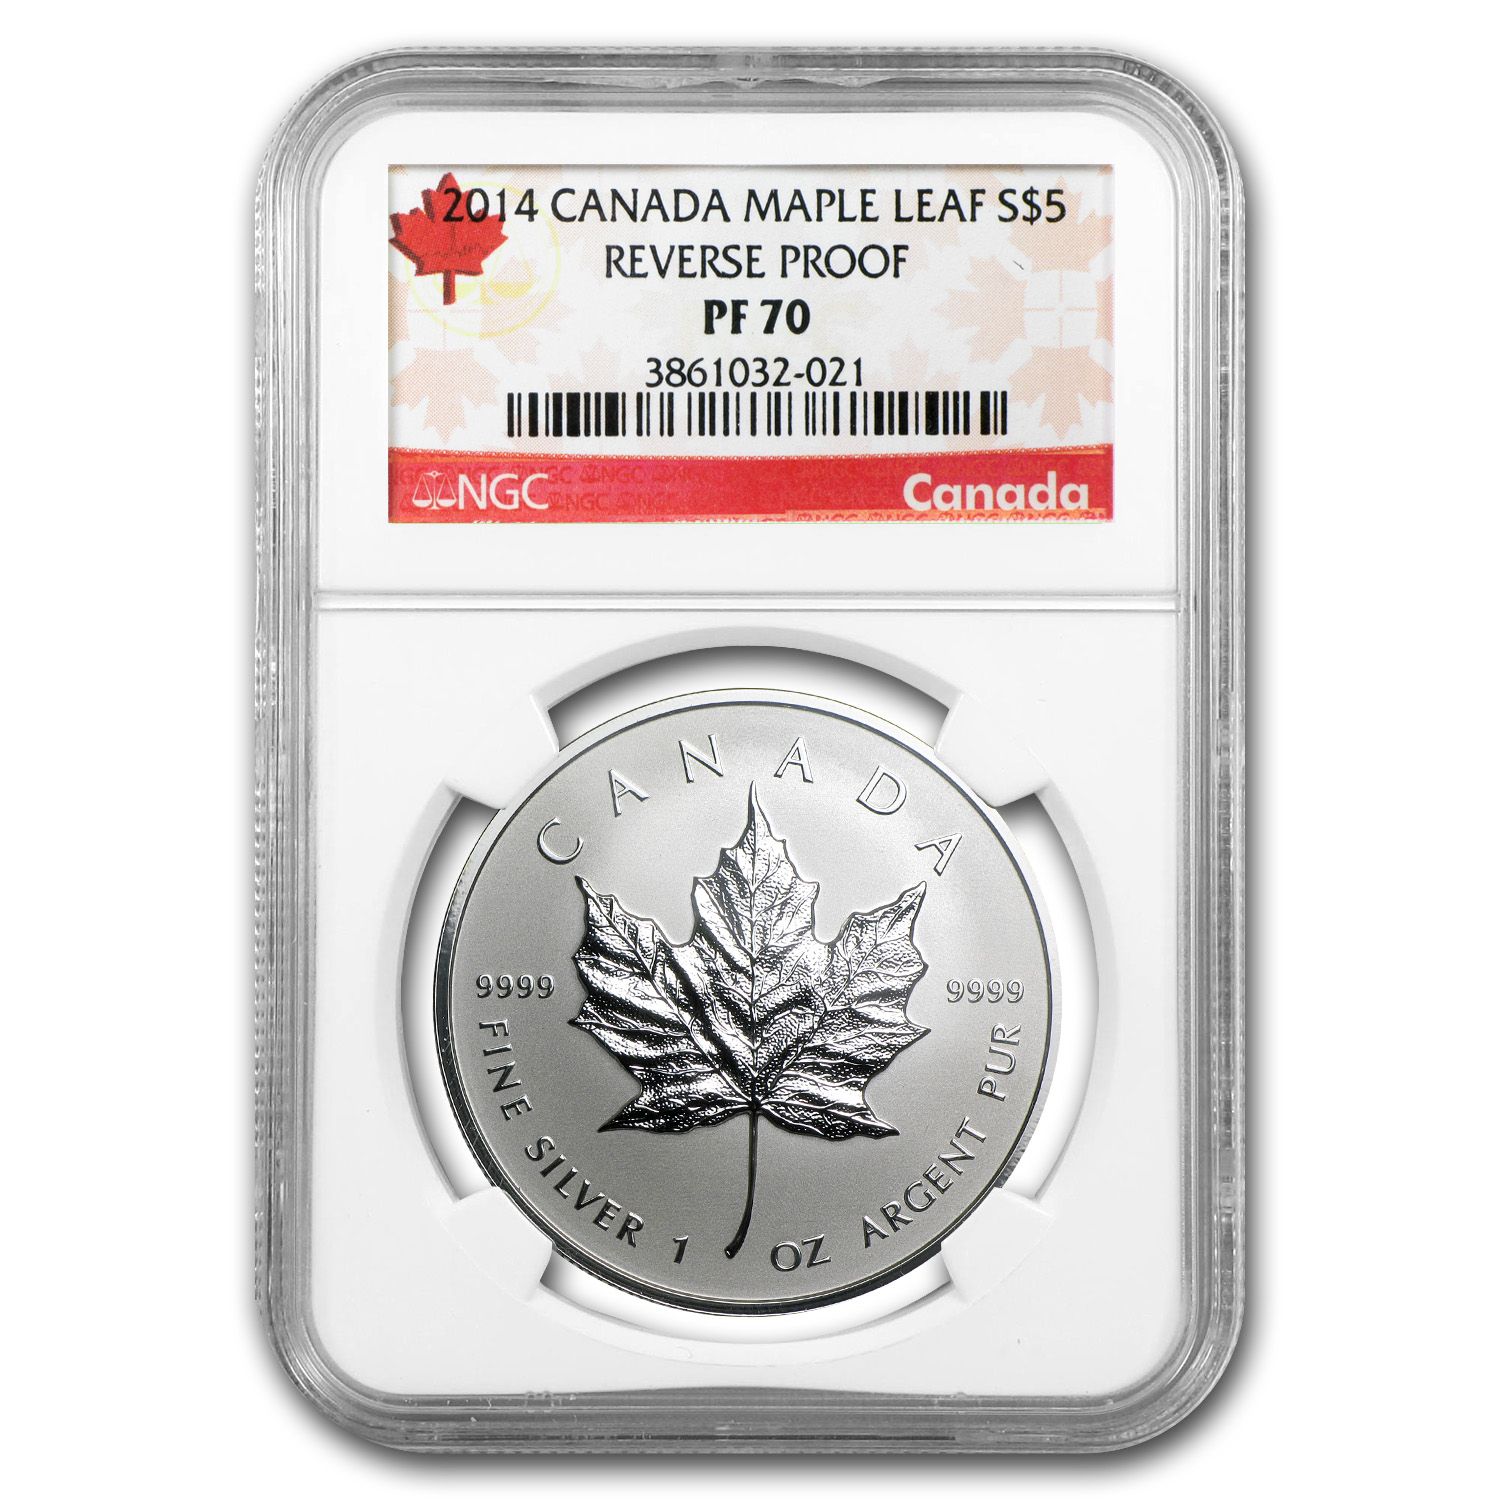 2014 1 oz Silver Reverse Proof Canadian Maple Leaf - PF-70 NGC